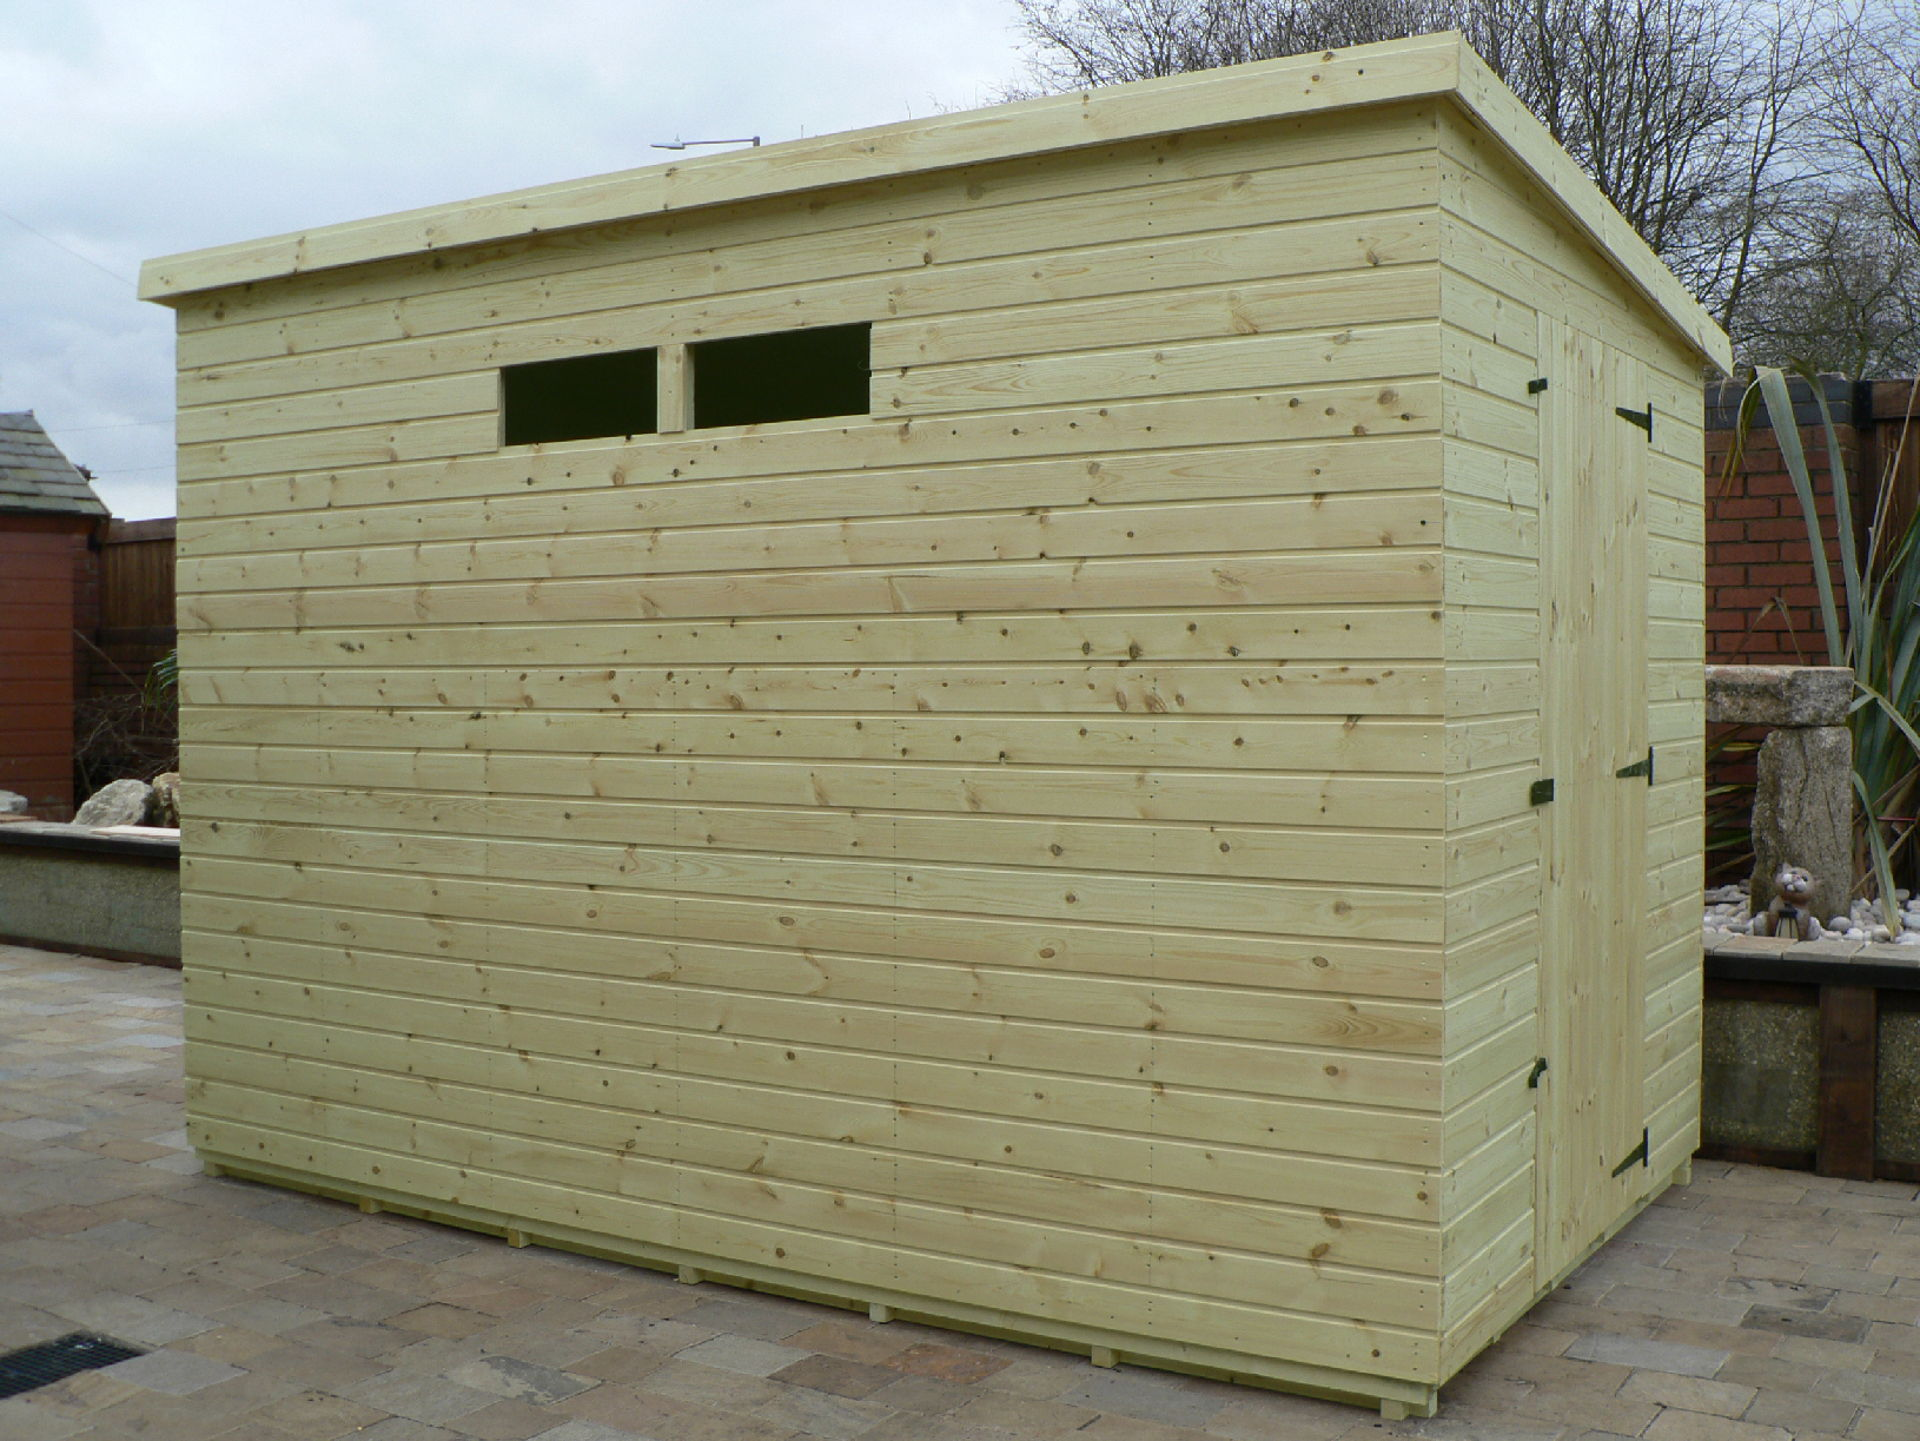 Sheds Manchester - Pressure Treated 10' x 6' Pent Shed . Door On The Right Gable End Panel. Security Windows